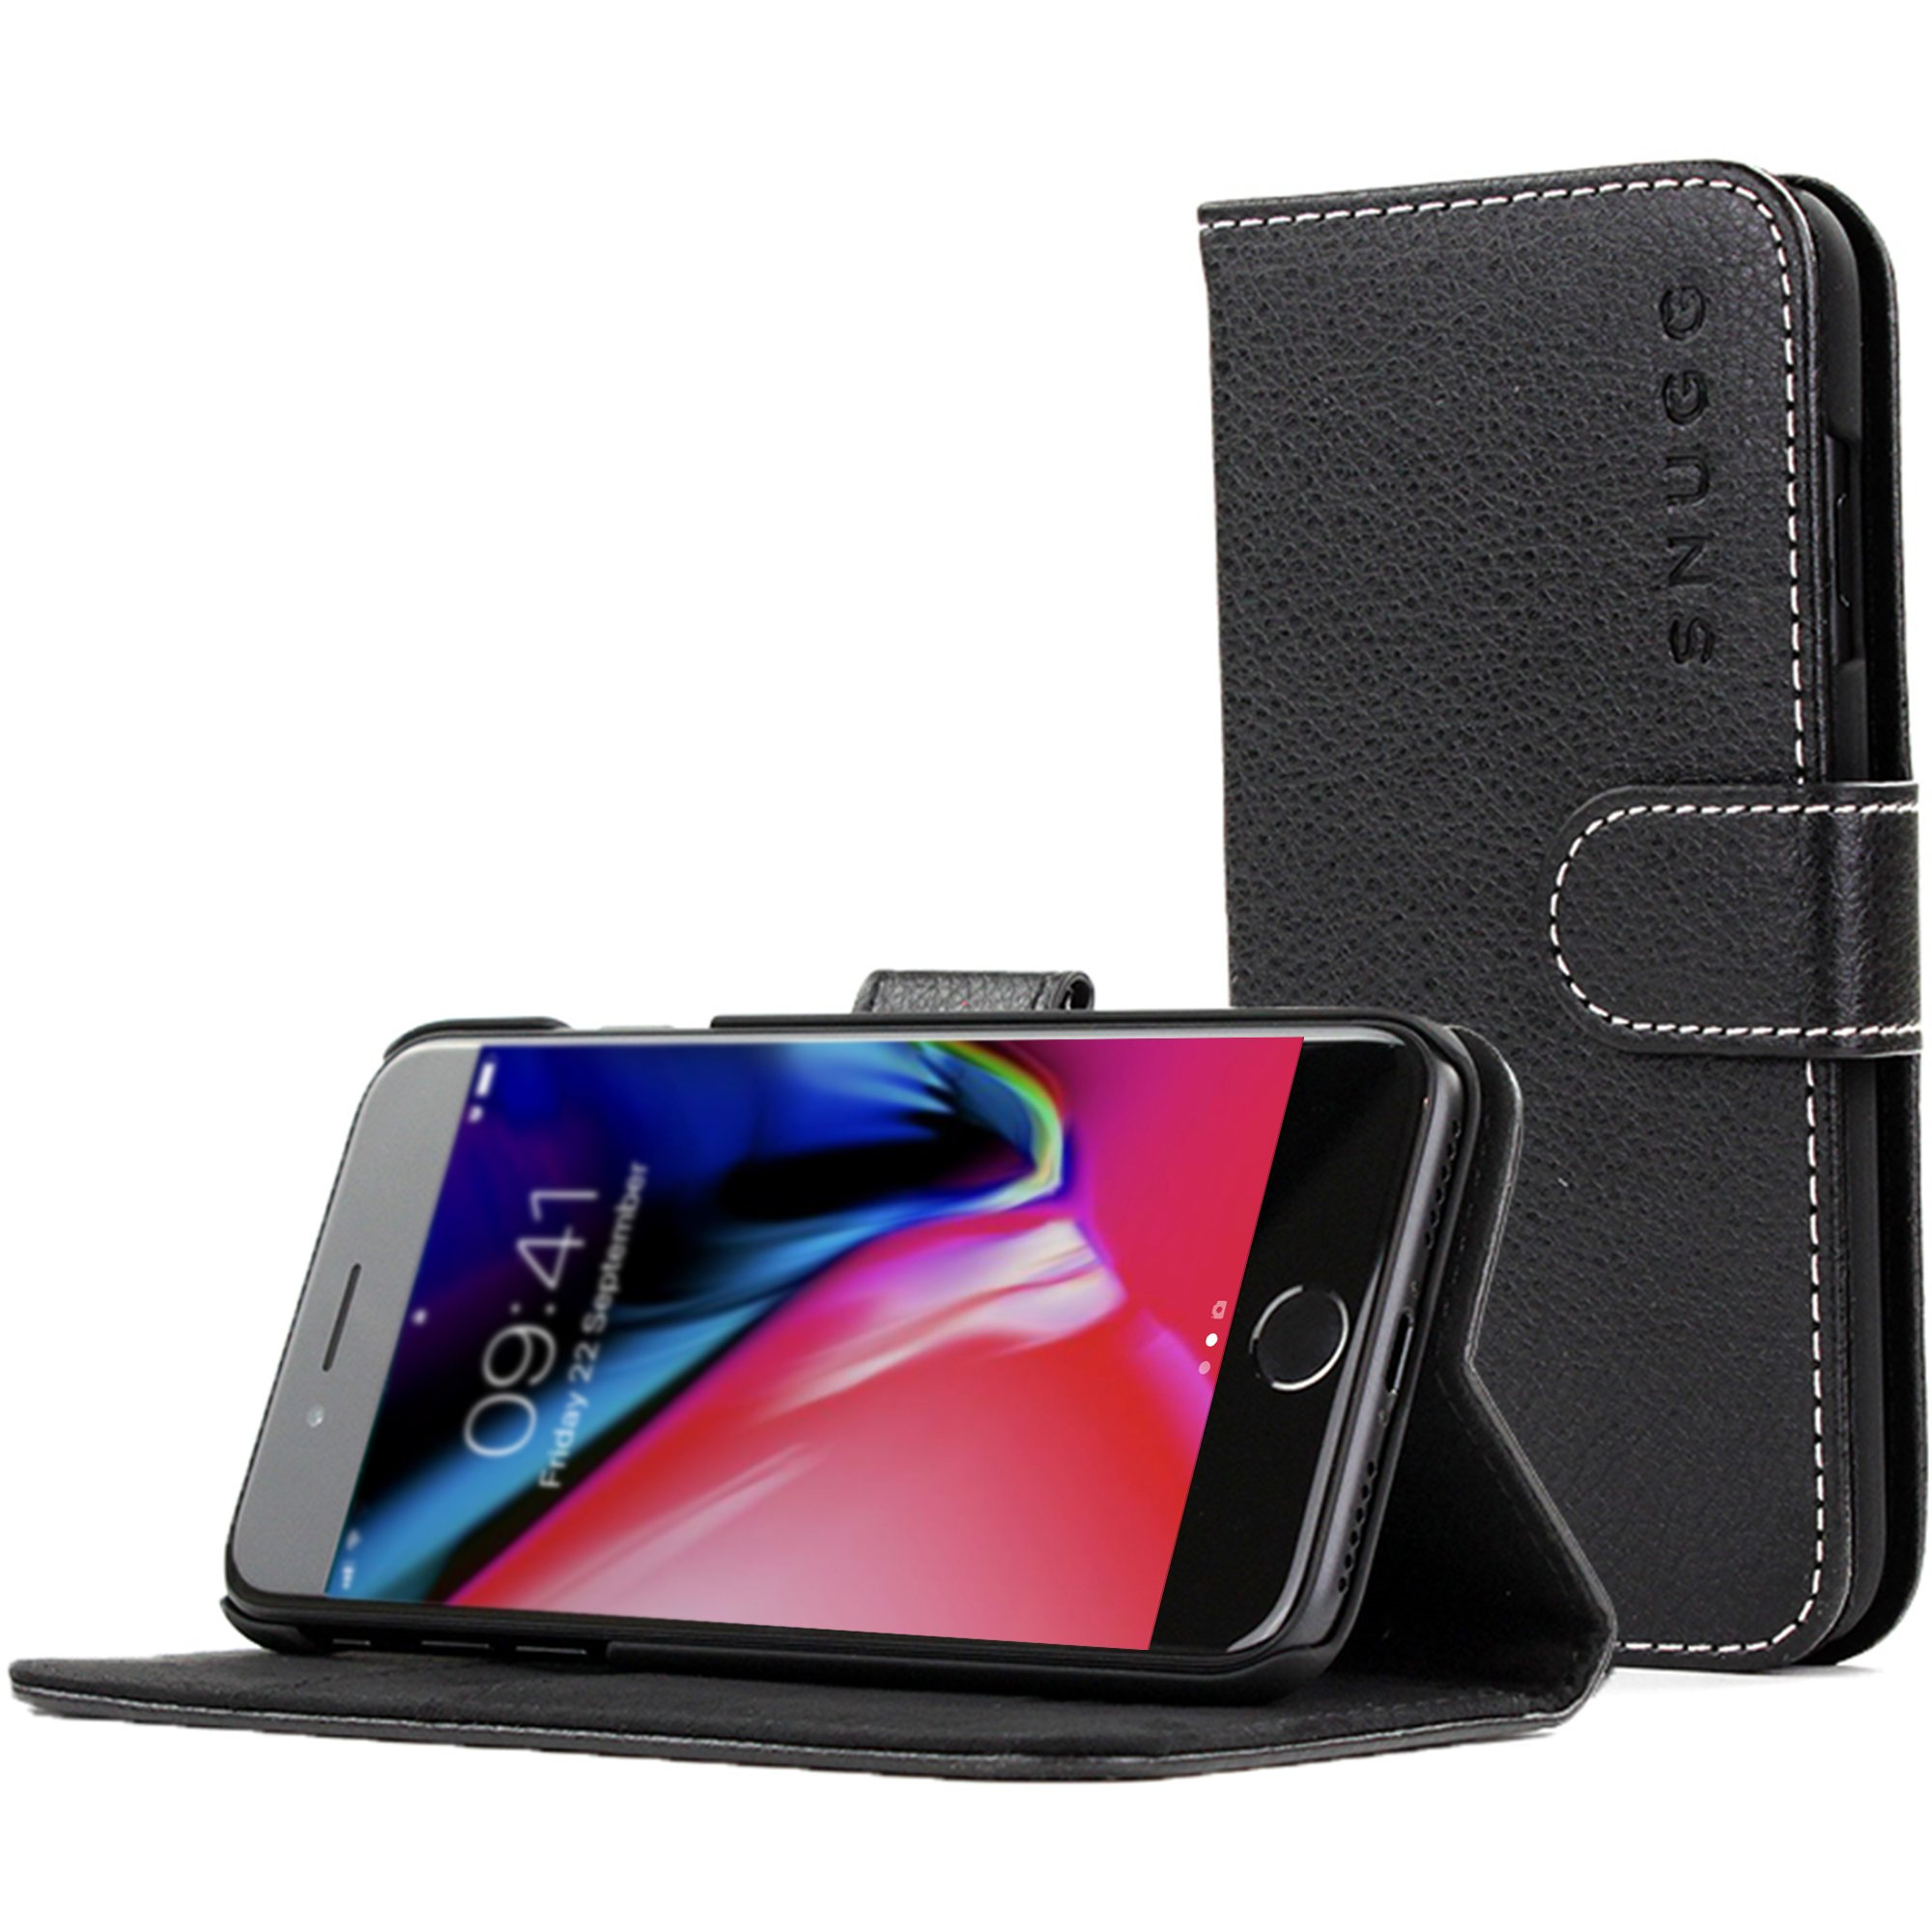 Snugg iPhone 8 Plus / 7 Plus Wallet Case – Leather Card Case Wallet with Handy Stand Feature – Legacy Series Flip Phone Case Cover in Black